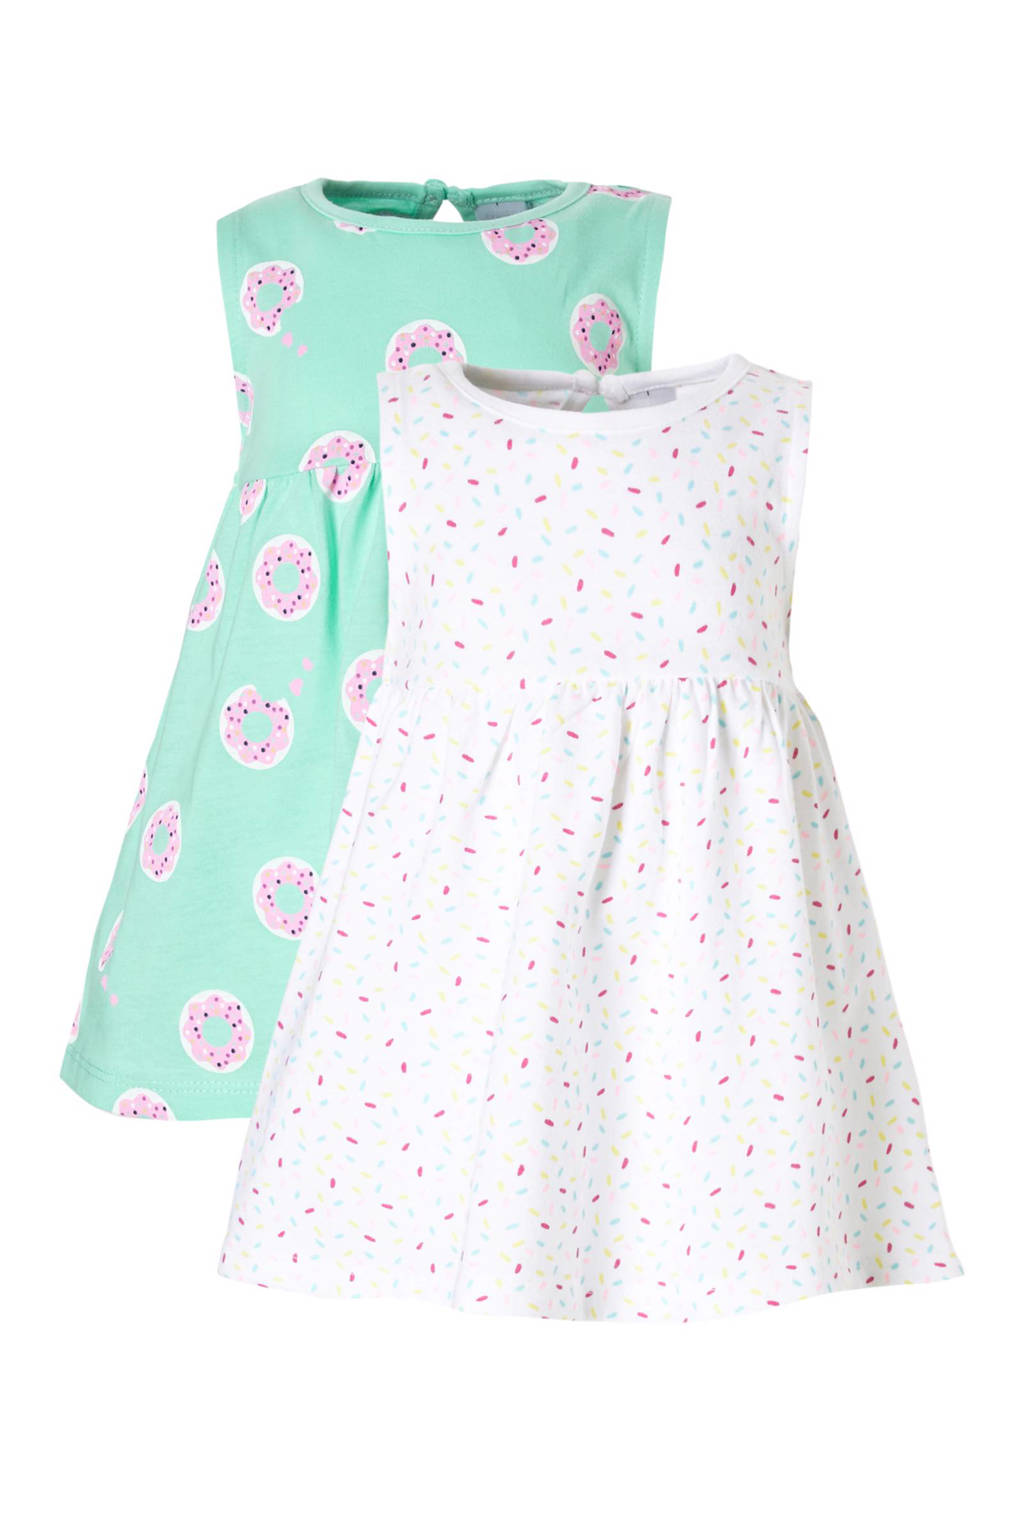 C&A Baby Club jurk met all over print (set van 2), Mintgroen/roze/wit